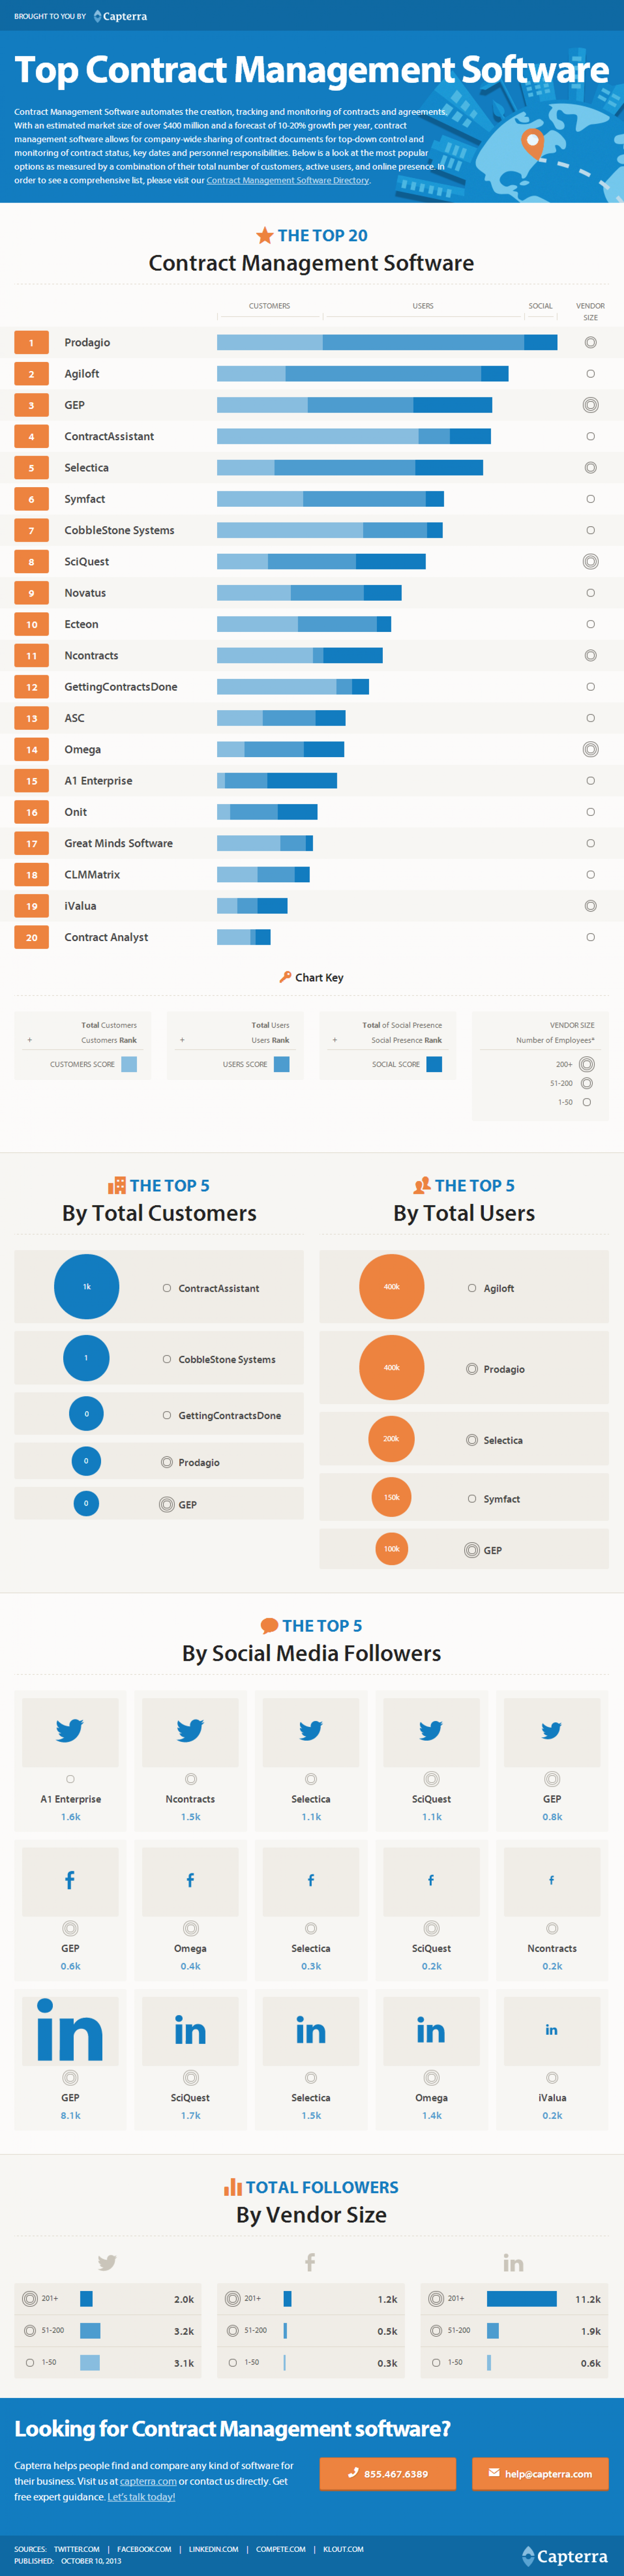 Top Contract Management Software Infographic